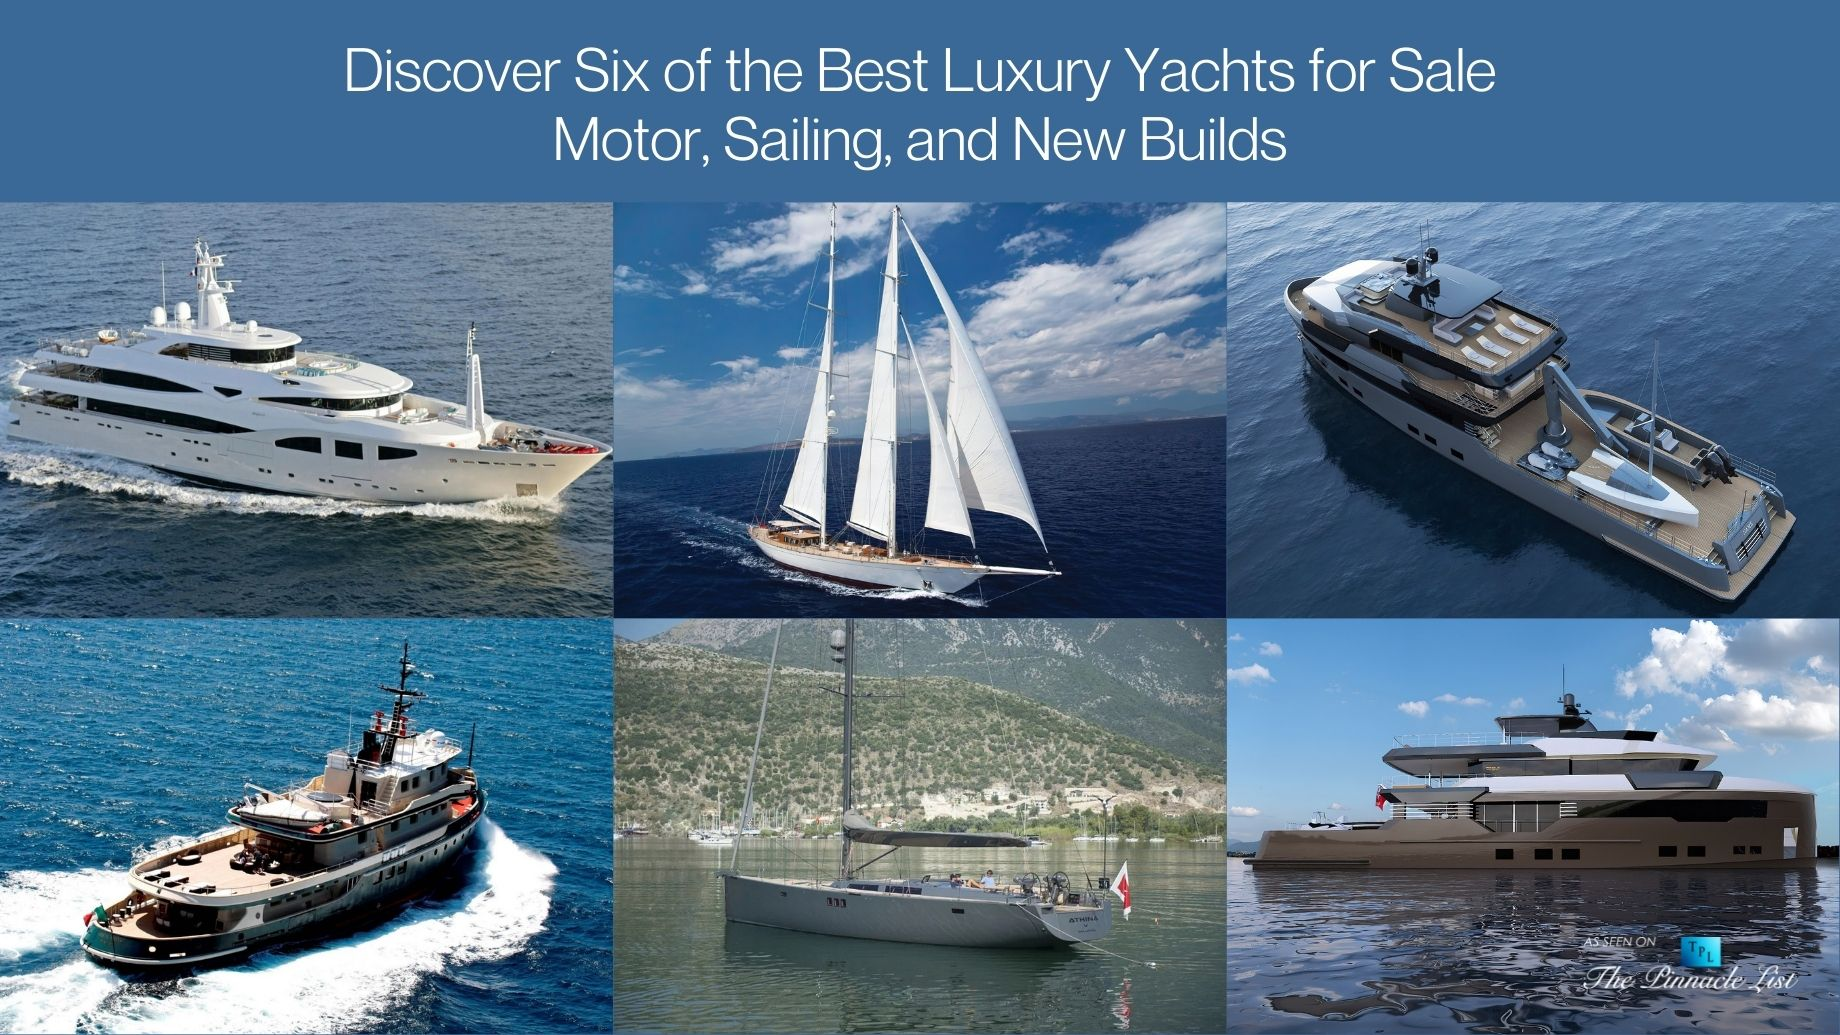 Discover Six of the Best Luxury Yachts for Sale - Motor, Sailing, and New Builds